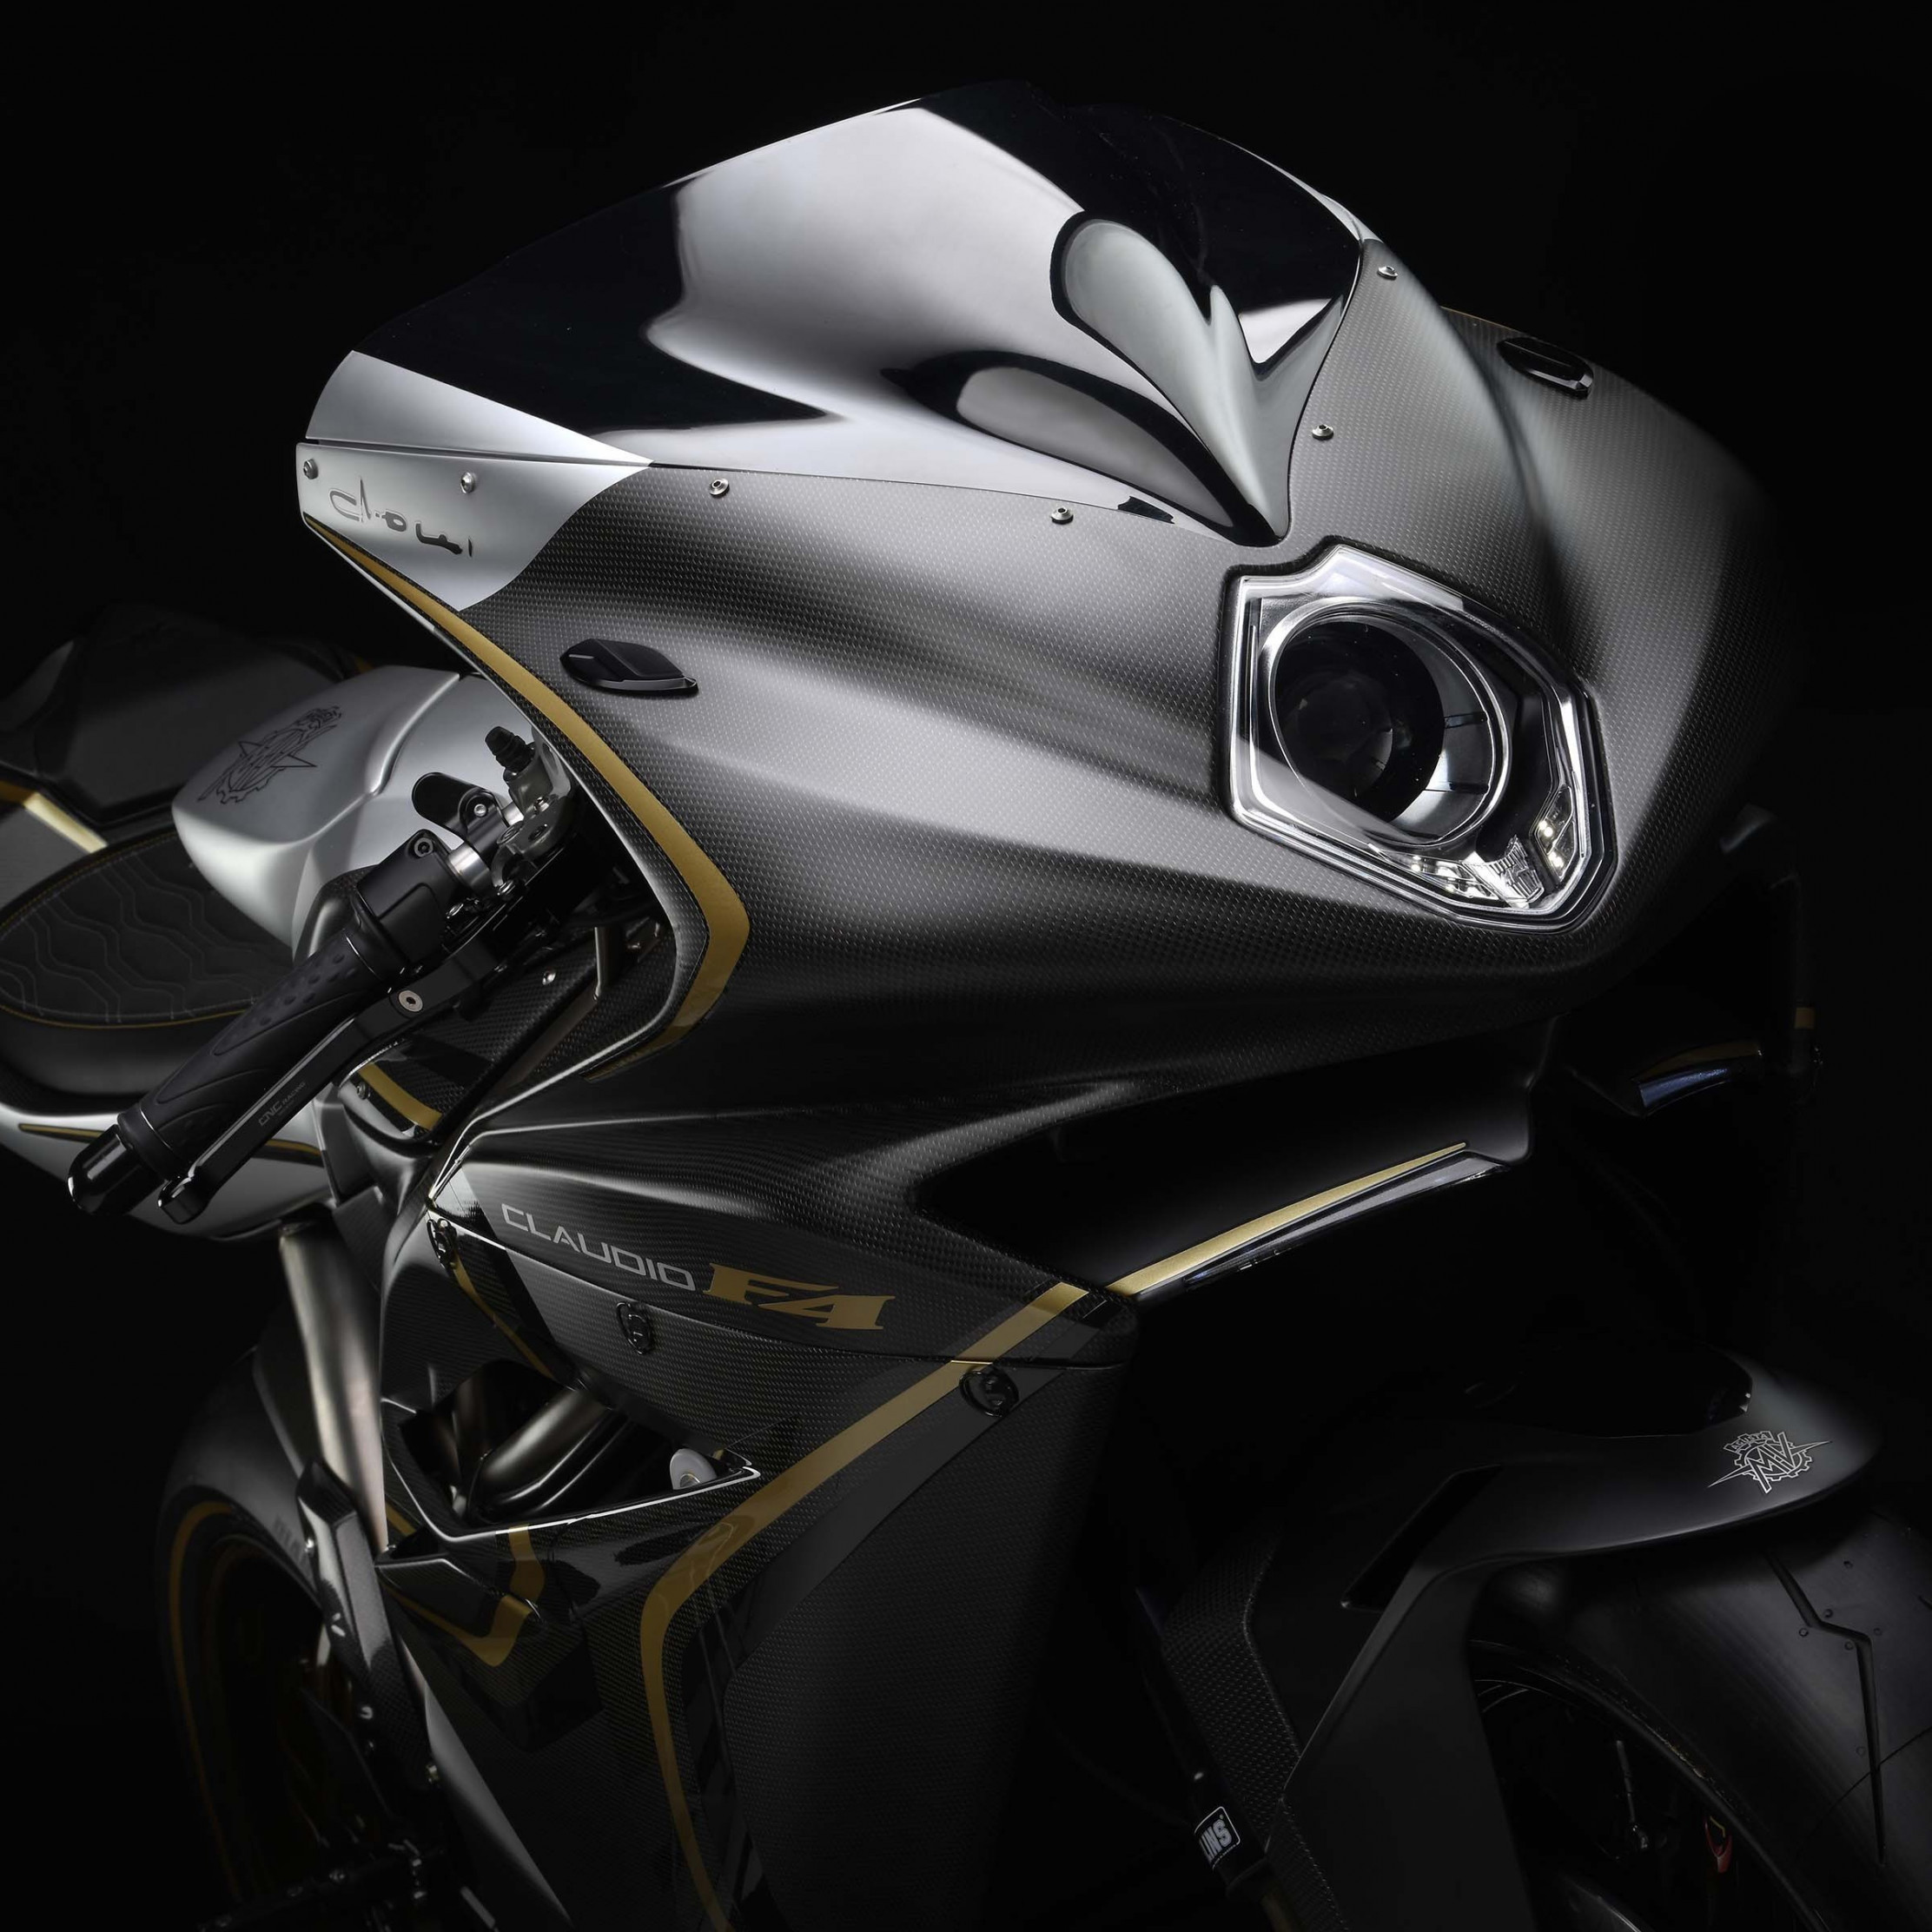 MV Agusta F4 Claudio wallpaper 2224x2224